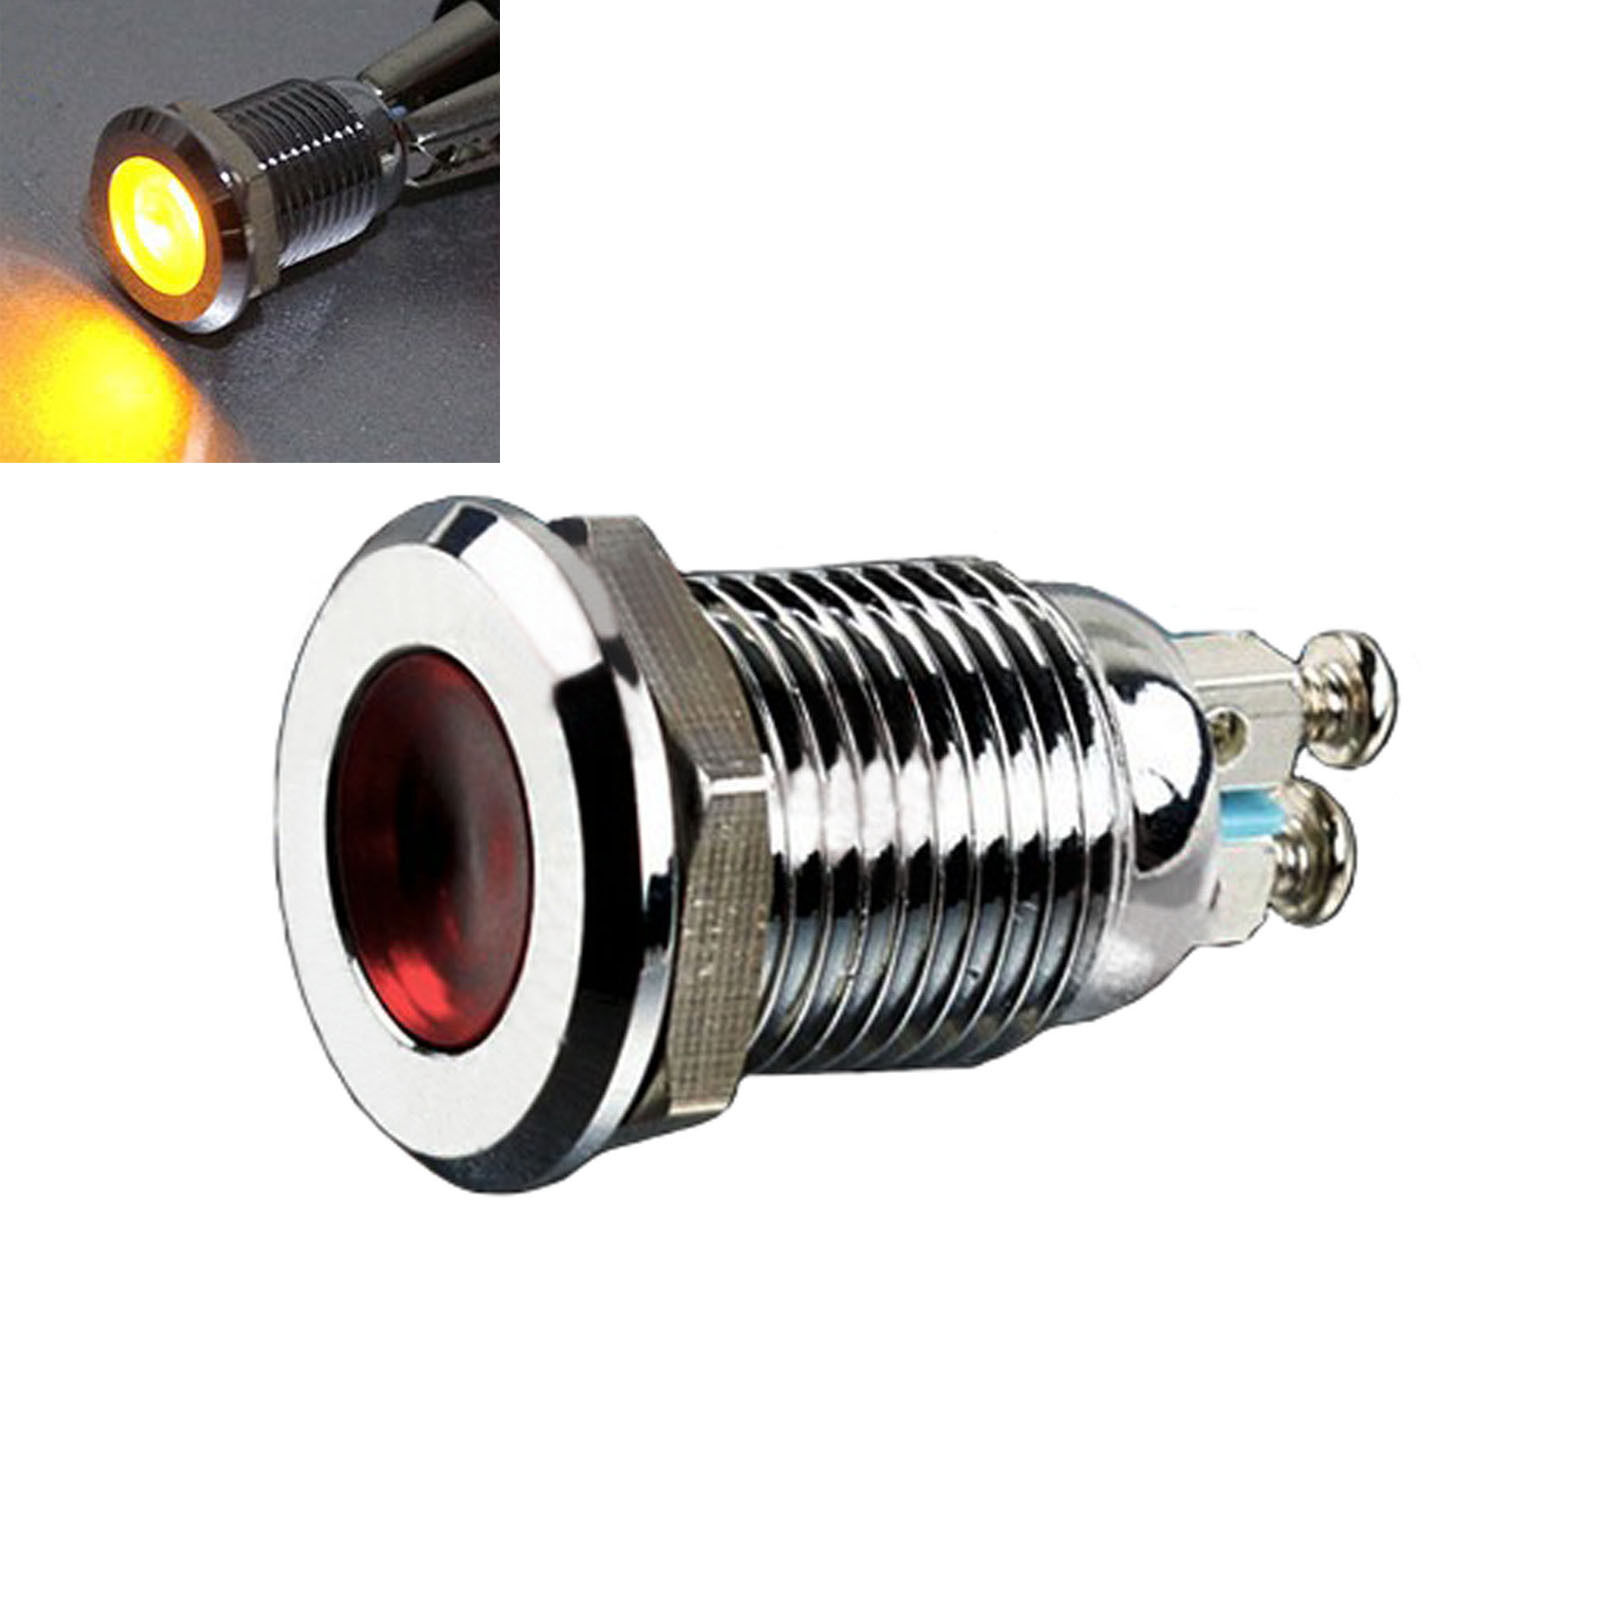 12mm Ac 220v Metal Yellow Indicator Light Signal Lamp Thread Mounted 5pcs 24v 8mm Red Led Power Xd8 1 Ebay Of 7only 2 Available See More